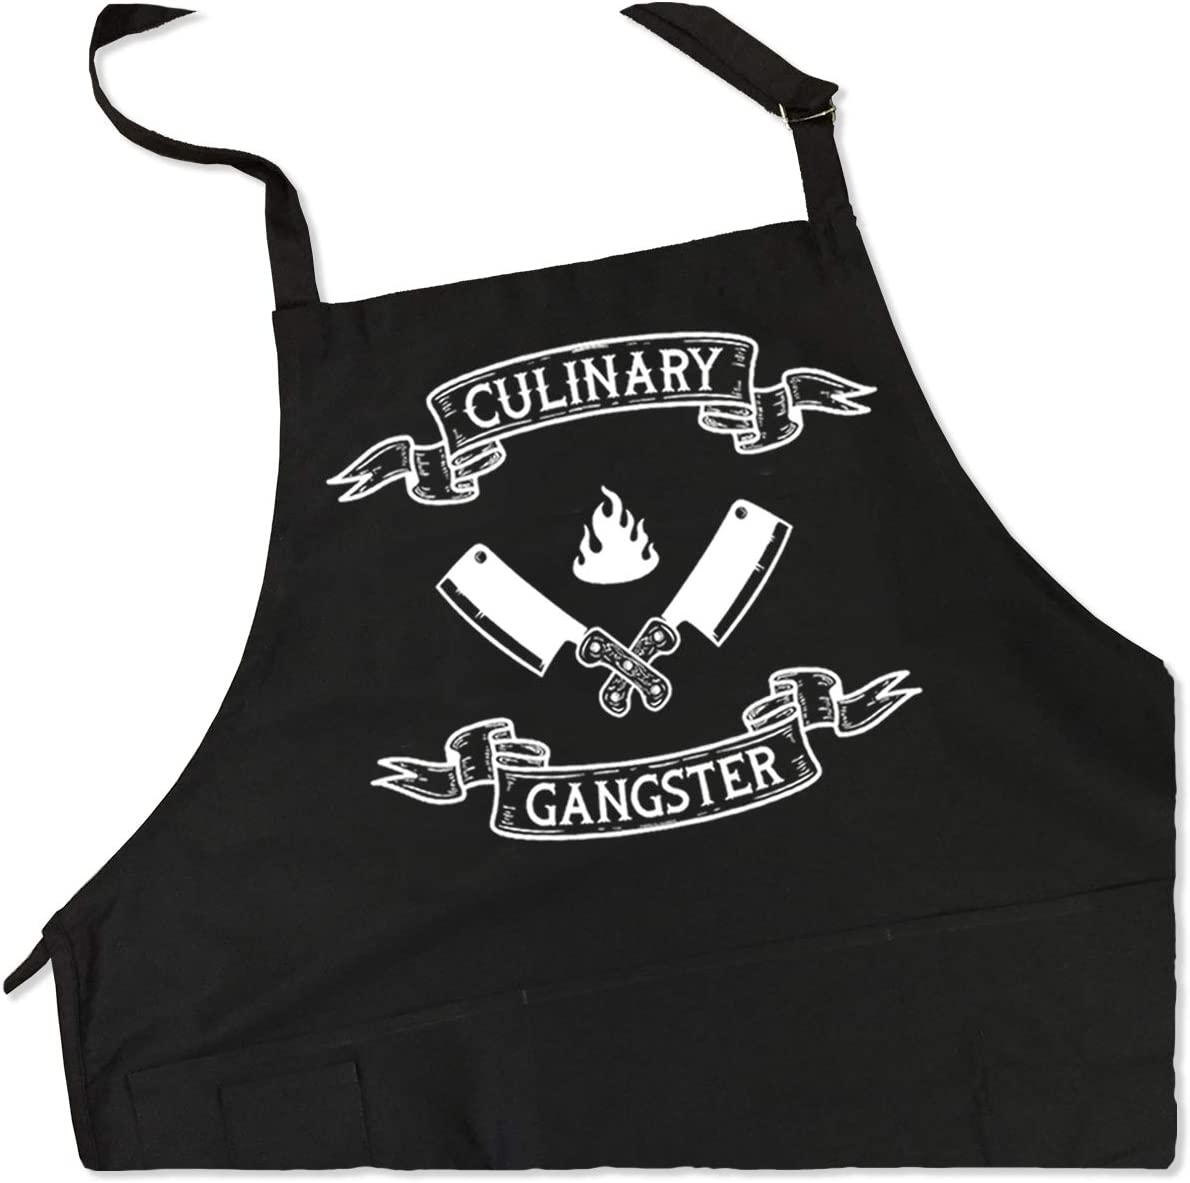 ApronMen - Culinary Gangster Apron - Funny BBQ Apron for Dads - 1 Size Fits All Chef Quality Cotton 4 Utility Pockets, Adjustable Neck and Extra Long Waist Ties - Black Color